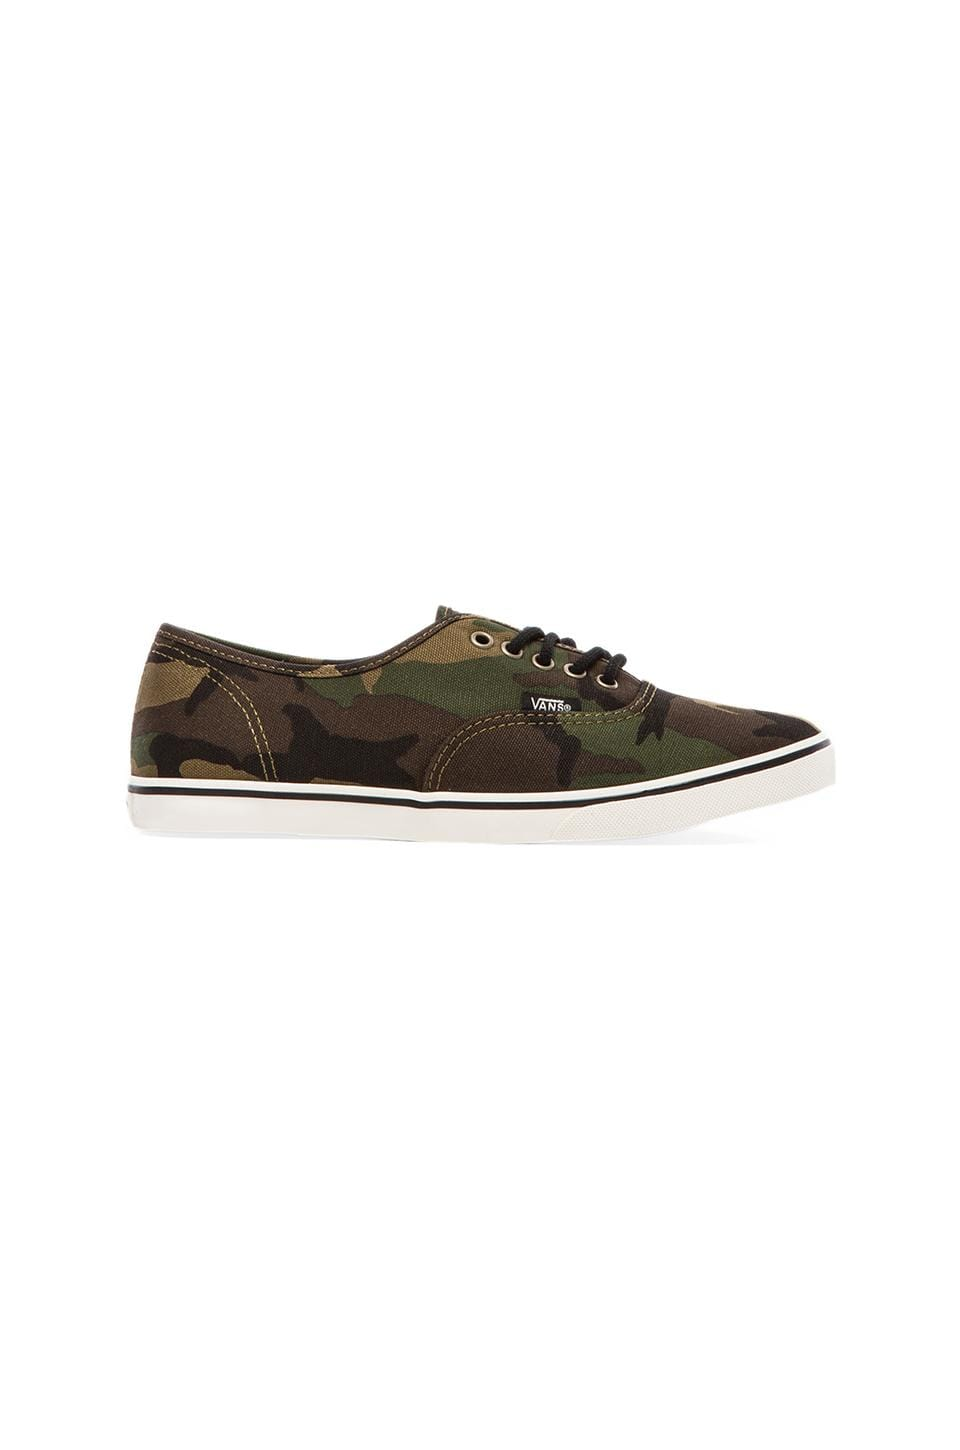 Vans Authentic Lo Pro Sneaker in Military Olive & Marshmallow